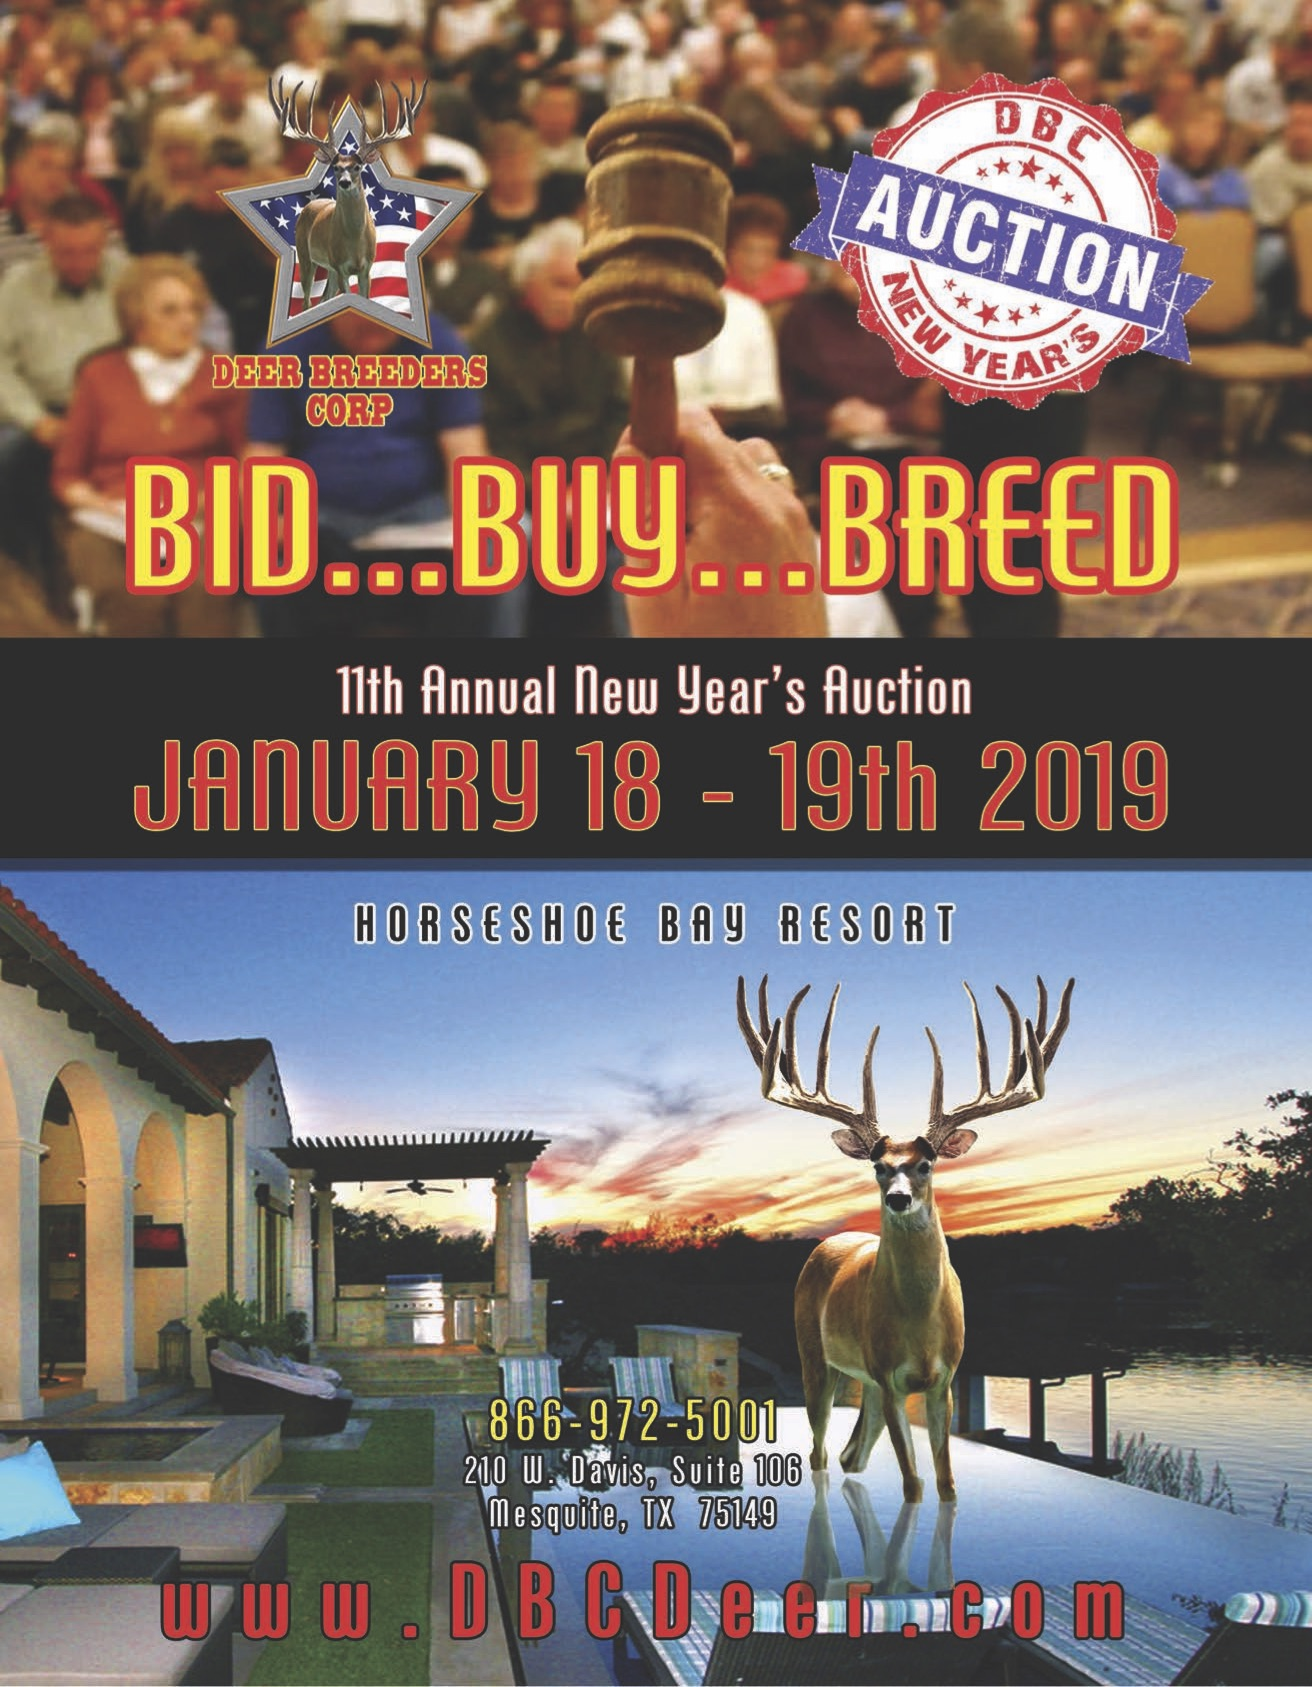 Deer Breeders Corp: New Year's Auction - Bar None Country Store